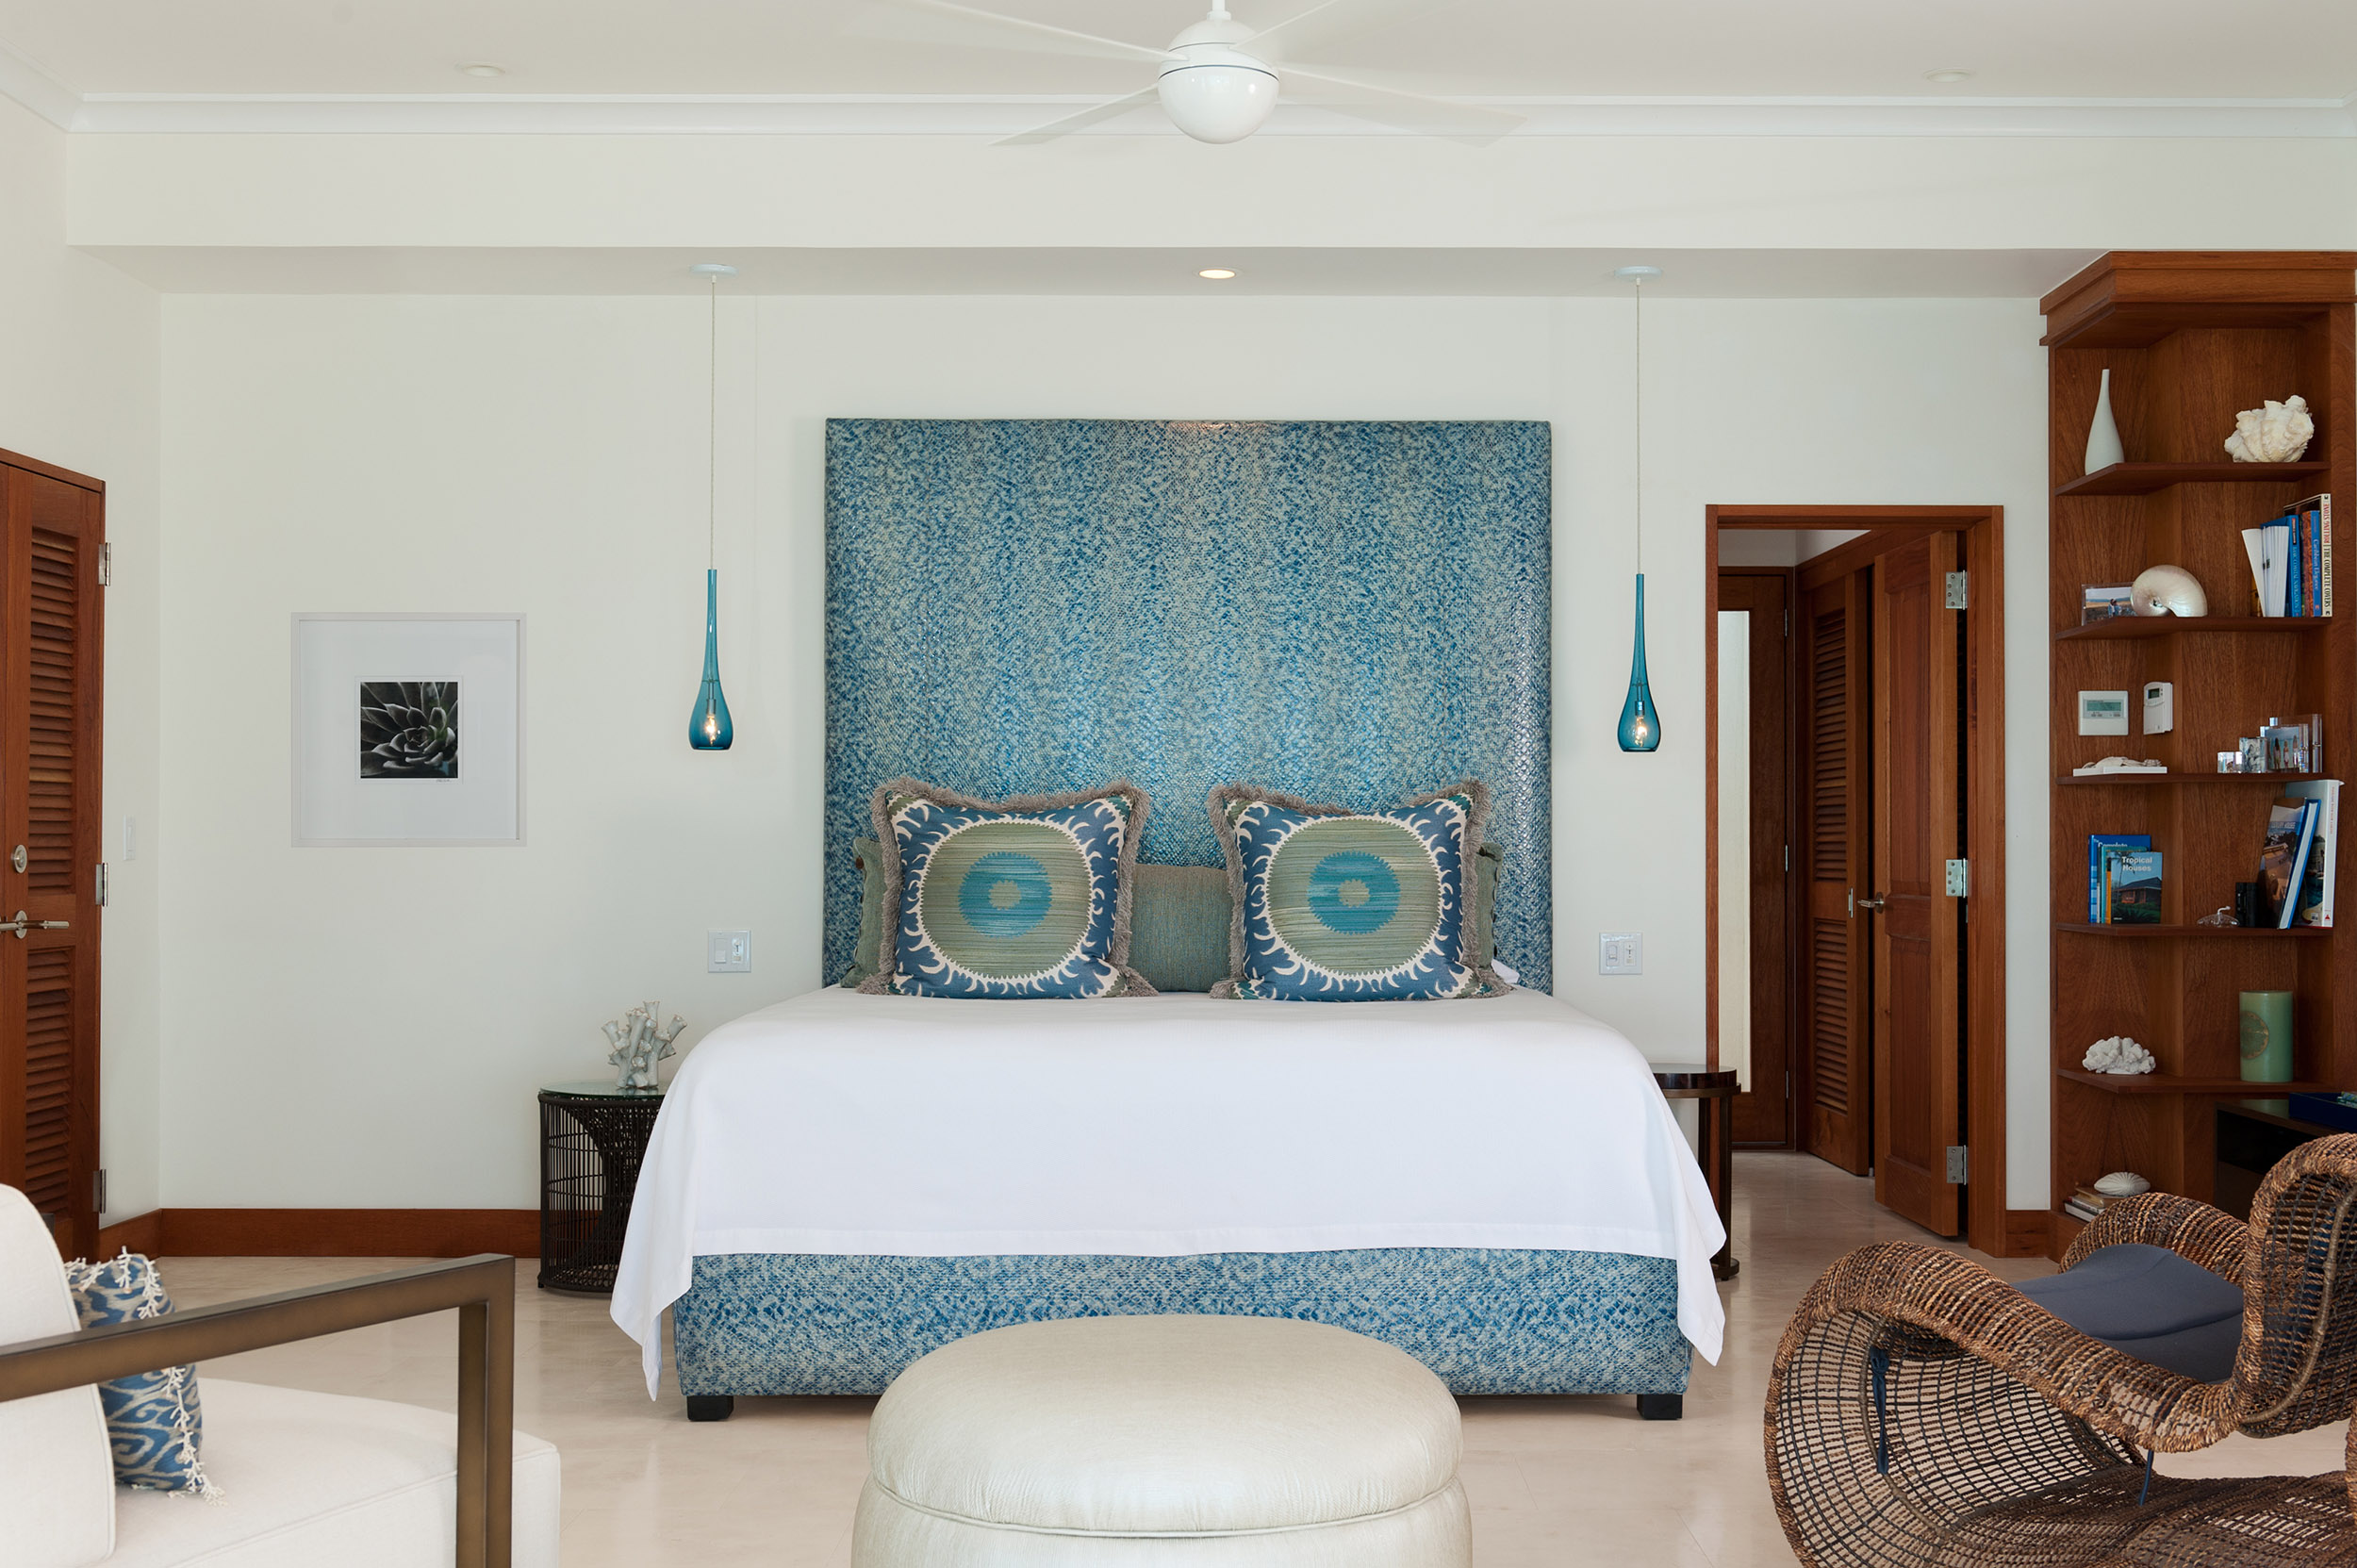 Dream Big Villa - view of the master bedroom in the main house